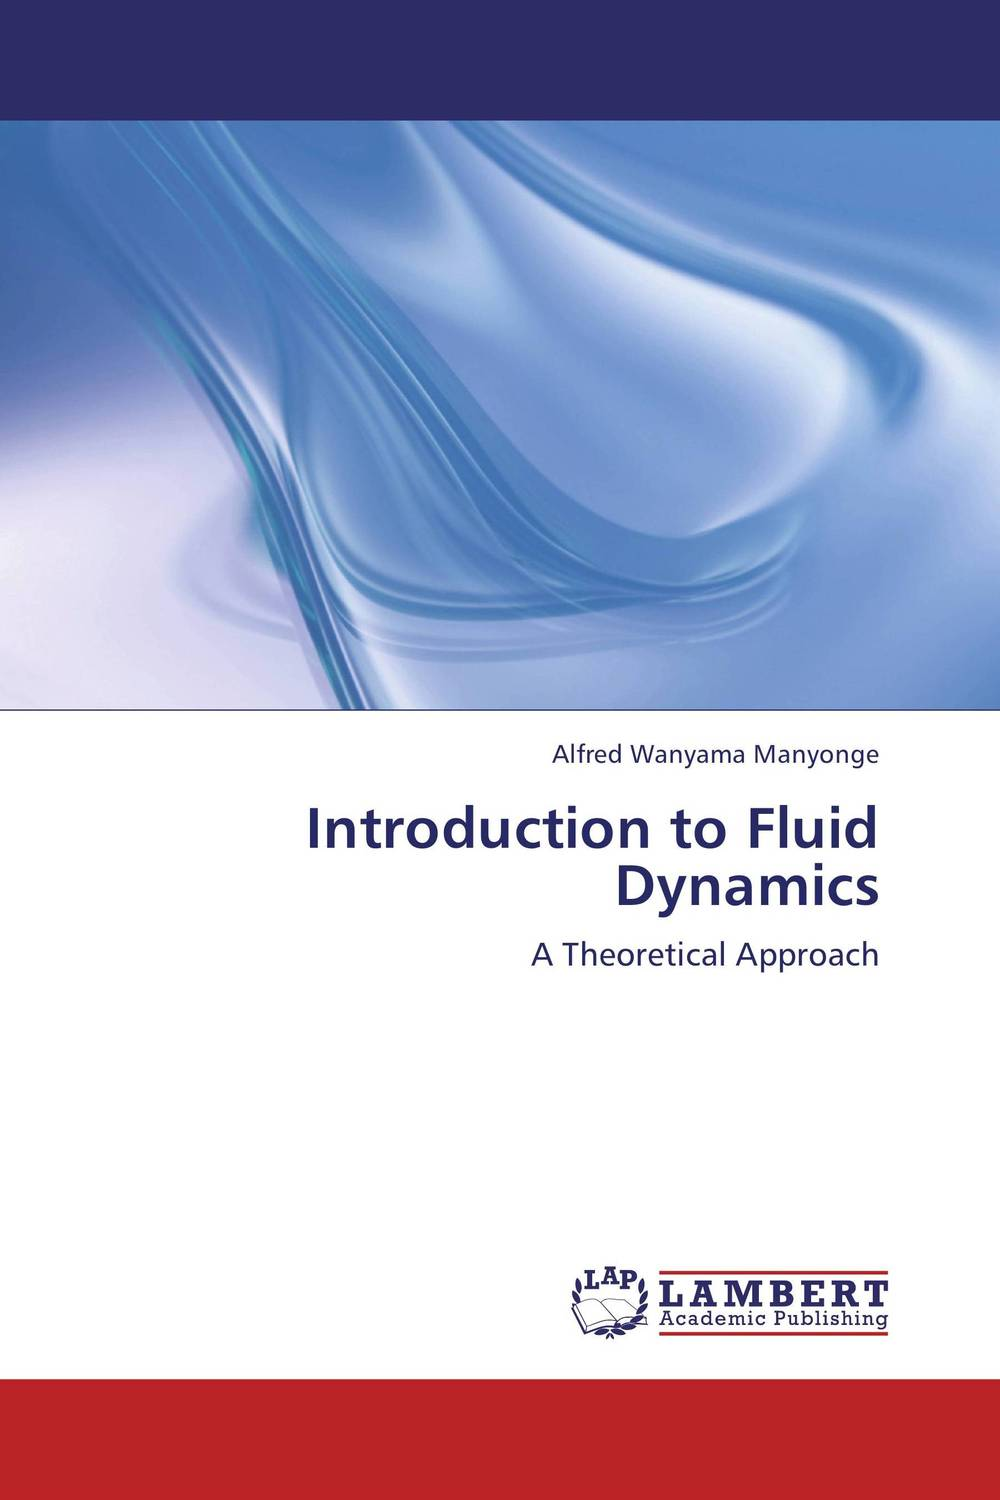 Introduction to Fluid Dynamics nutrient dynamics in a pristine subtropical lagoon estuarine system